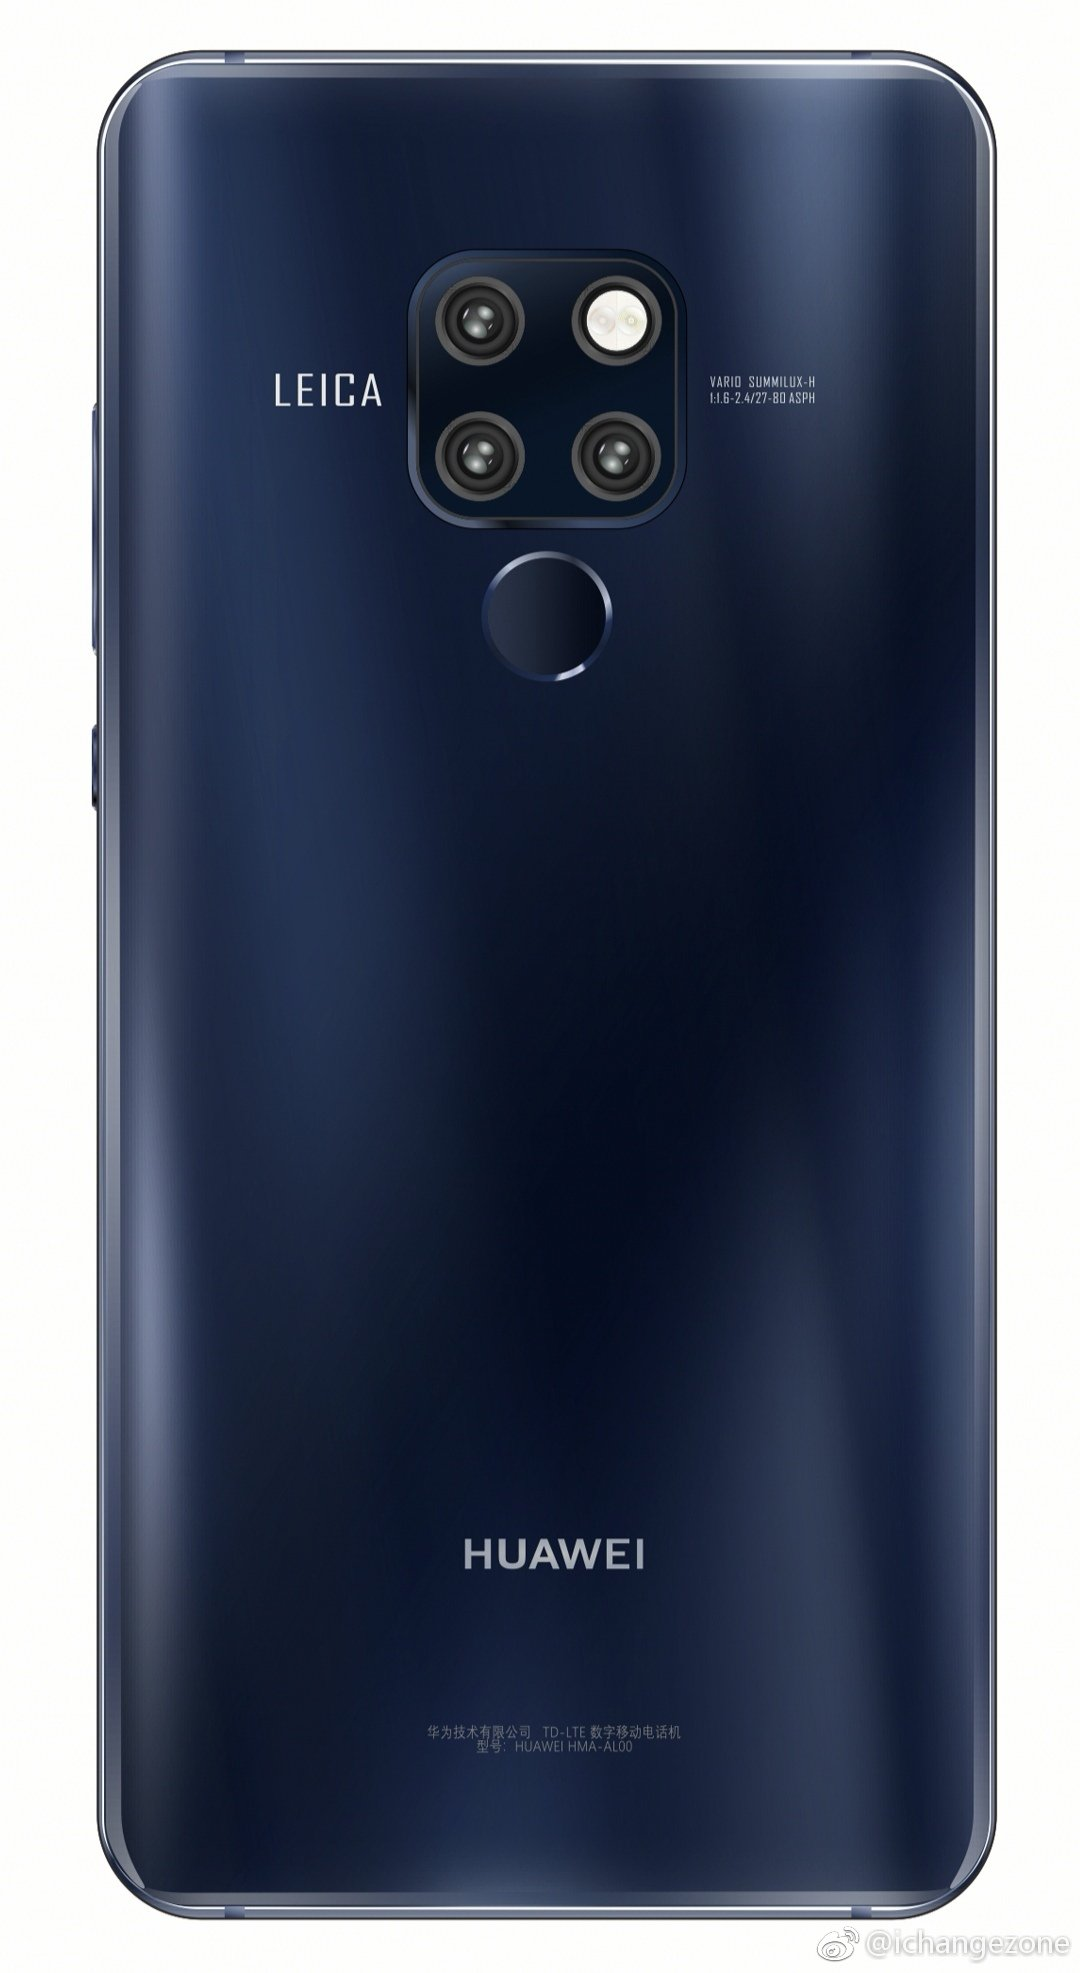 Huawei Mate 20 Renders with Blue and Black Color options 2